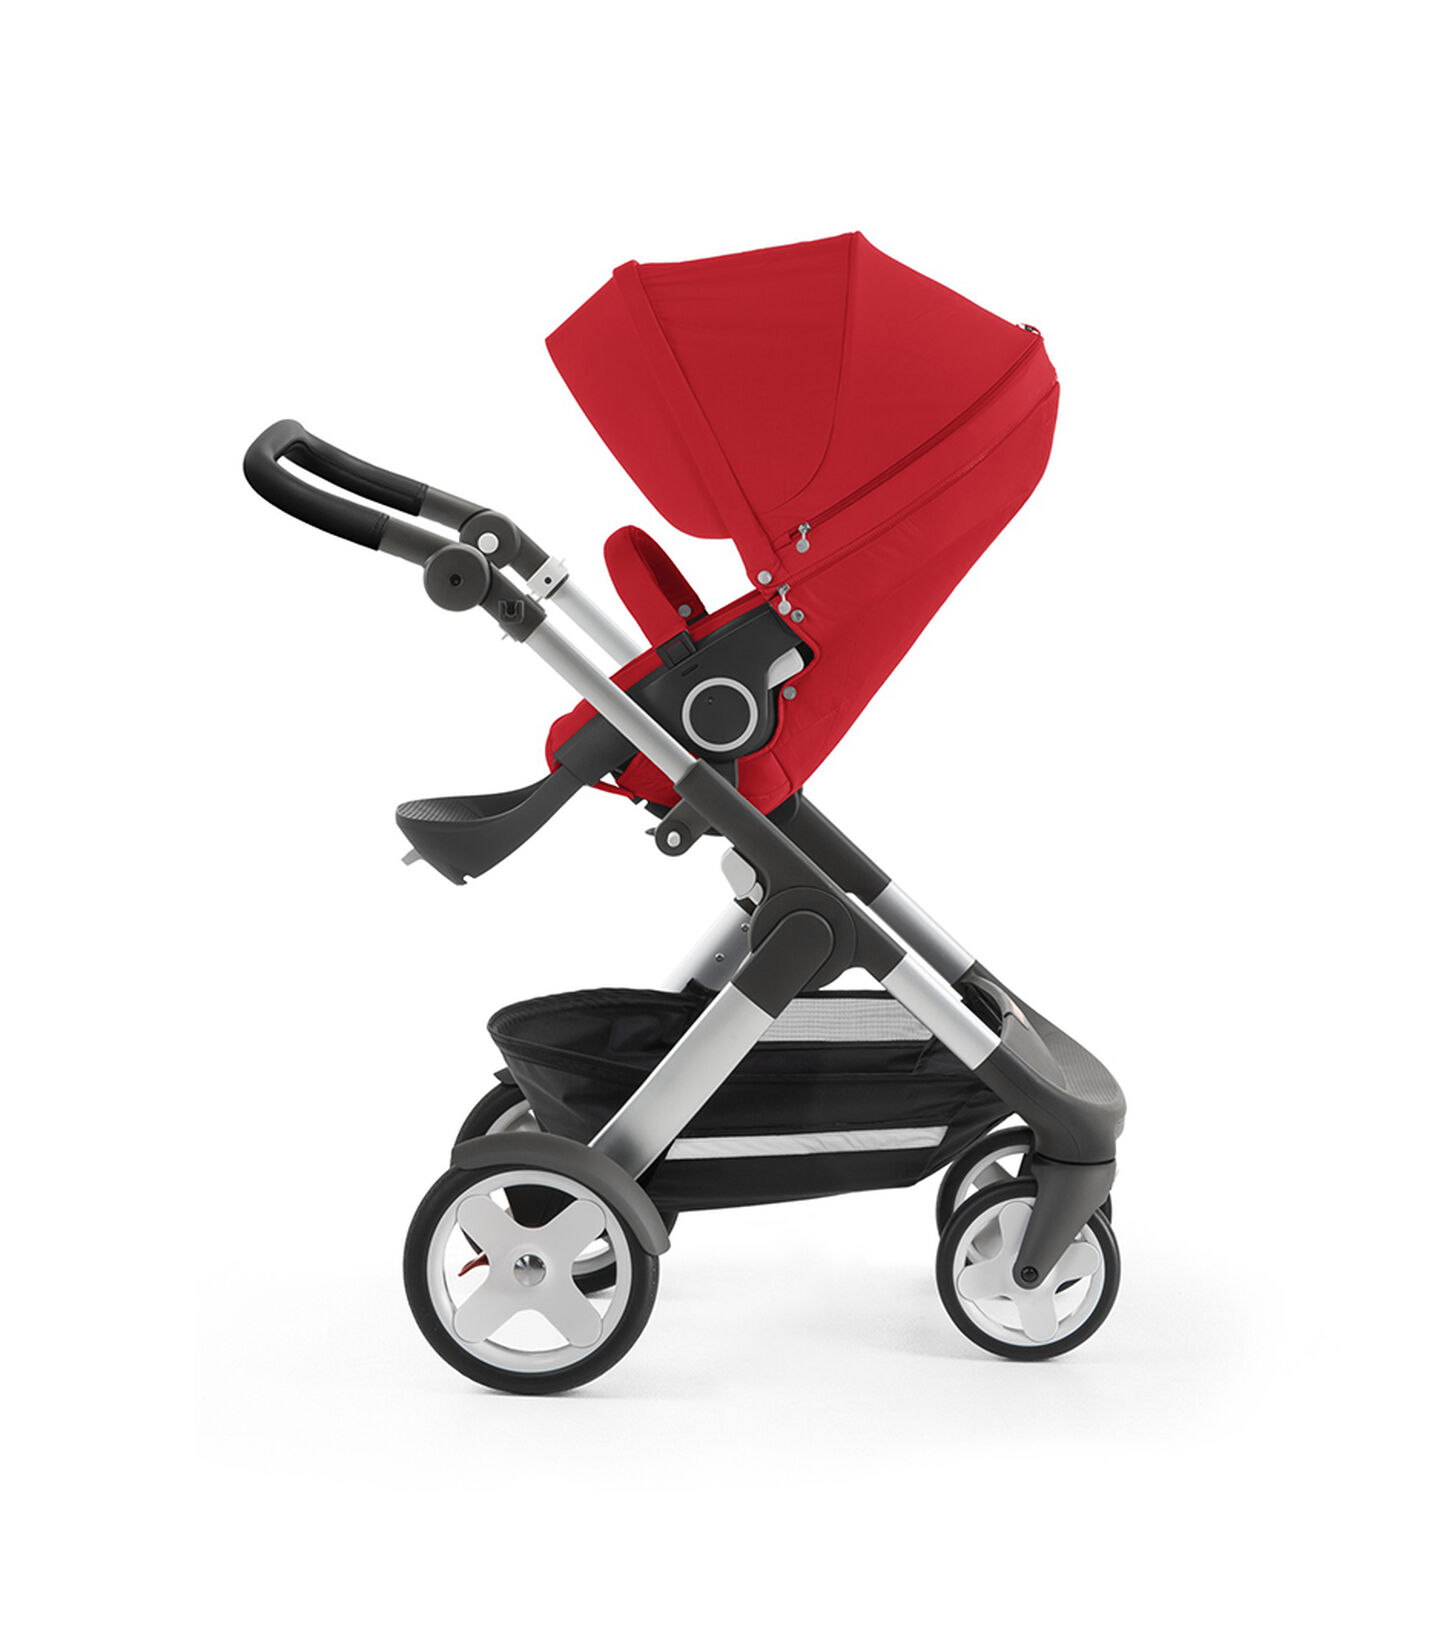 Stokke® Trailz™ Classic Red, Red, mainview view 2